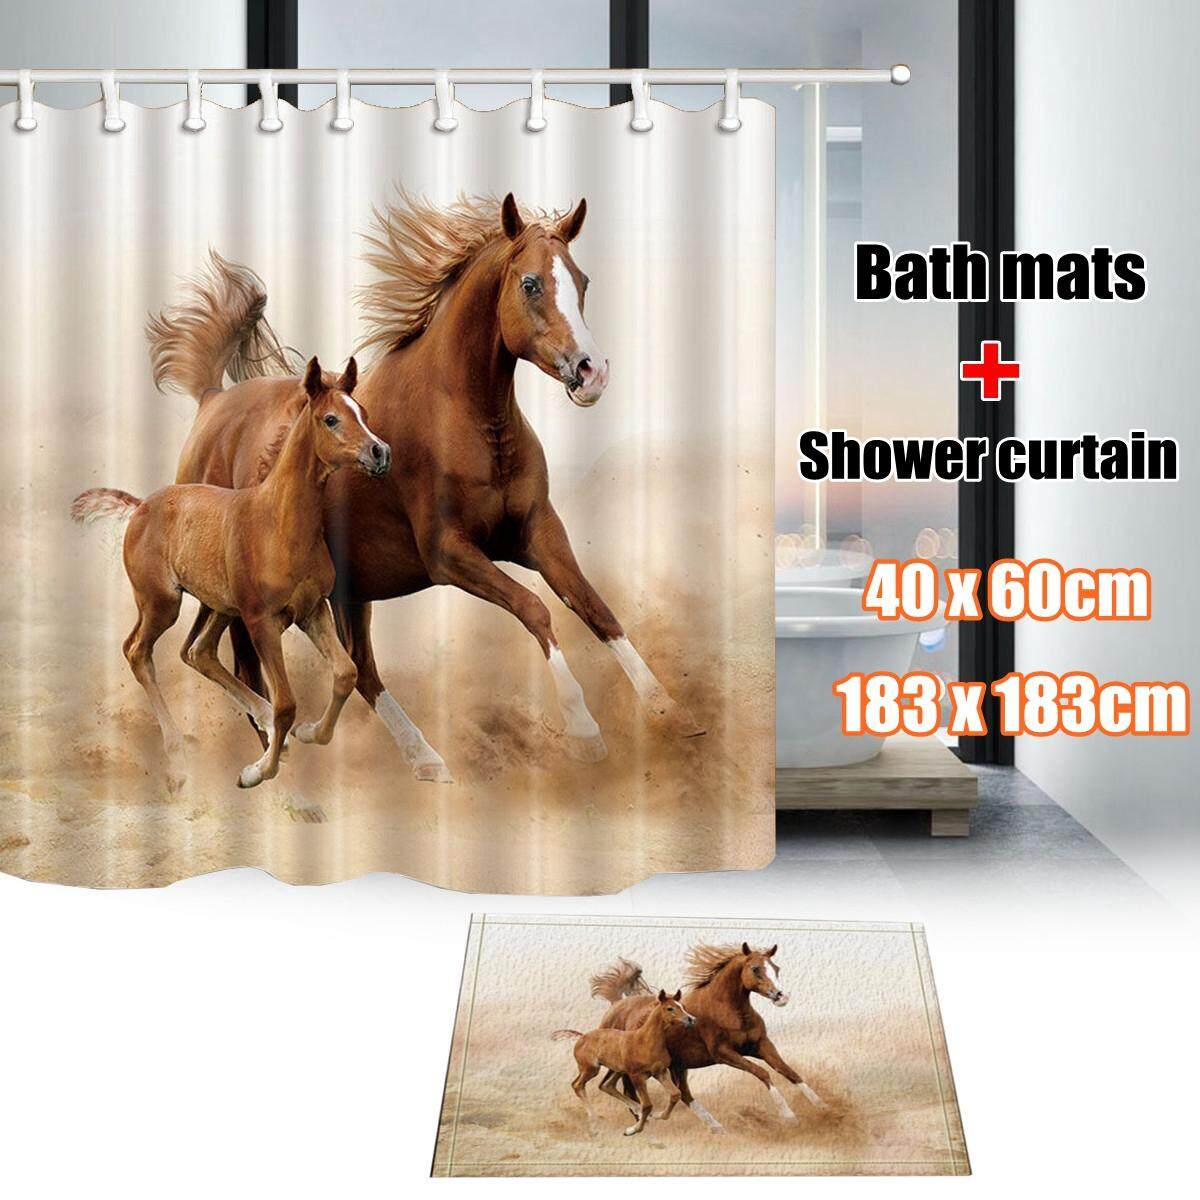 【Free Shipping + Flash Deal】Horse mother and son Bathroom Shower Curtain Waterproof Fabric w/12 Hook 71*71in